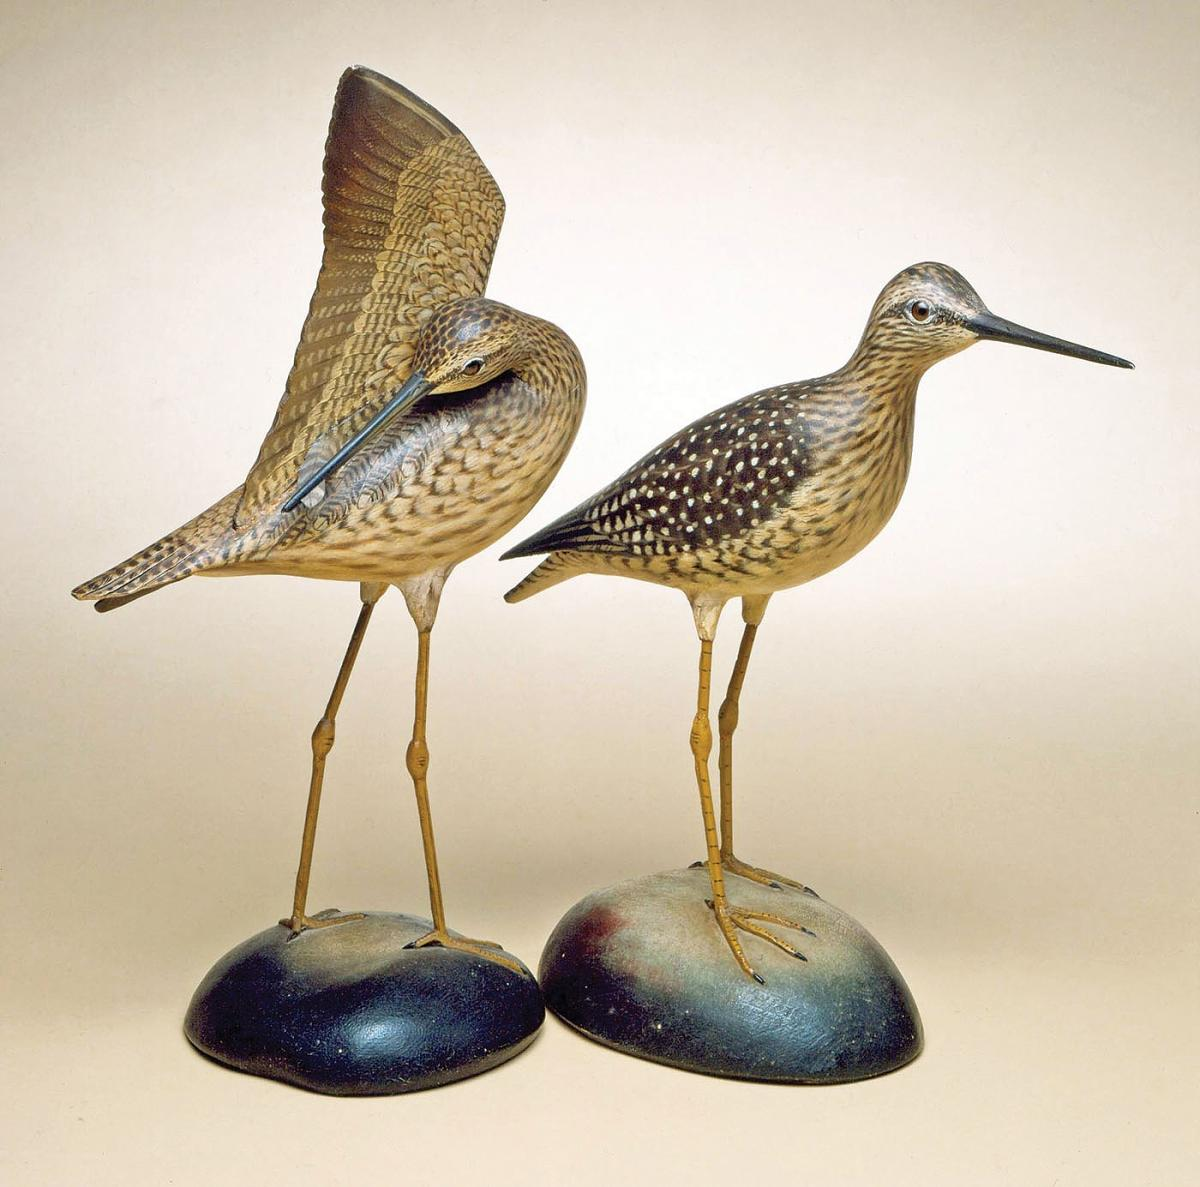 A pair of yellowlegs birds, carved in wood, one standing and the other reaching its beak under its wing